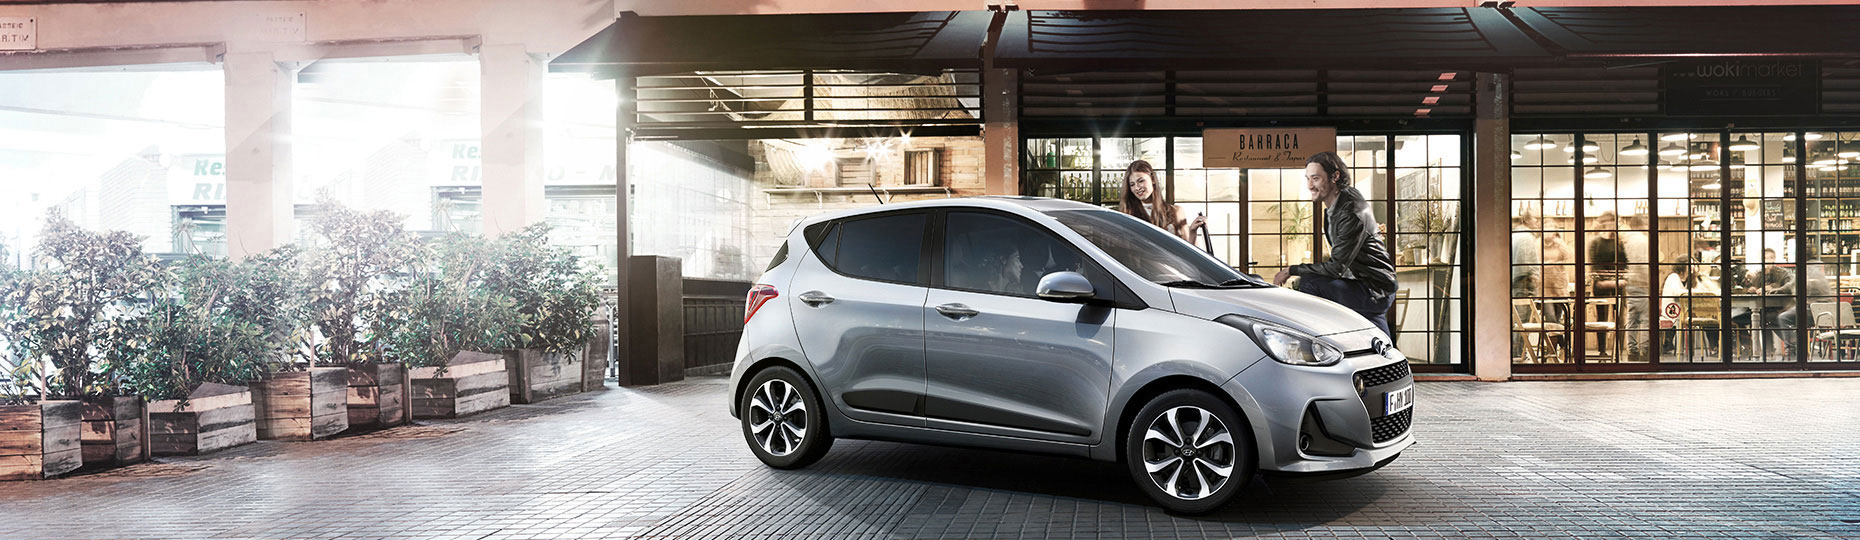 Silver i10 is parked in front of a café